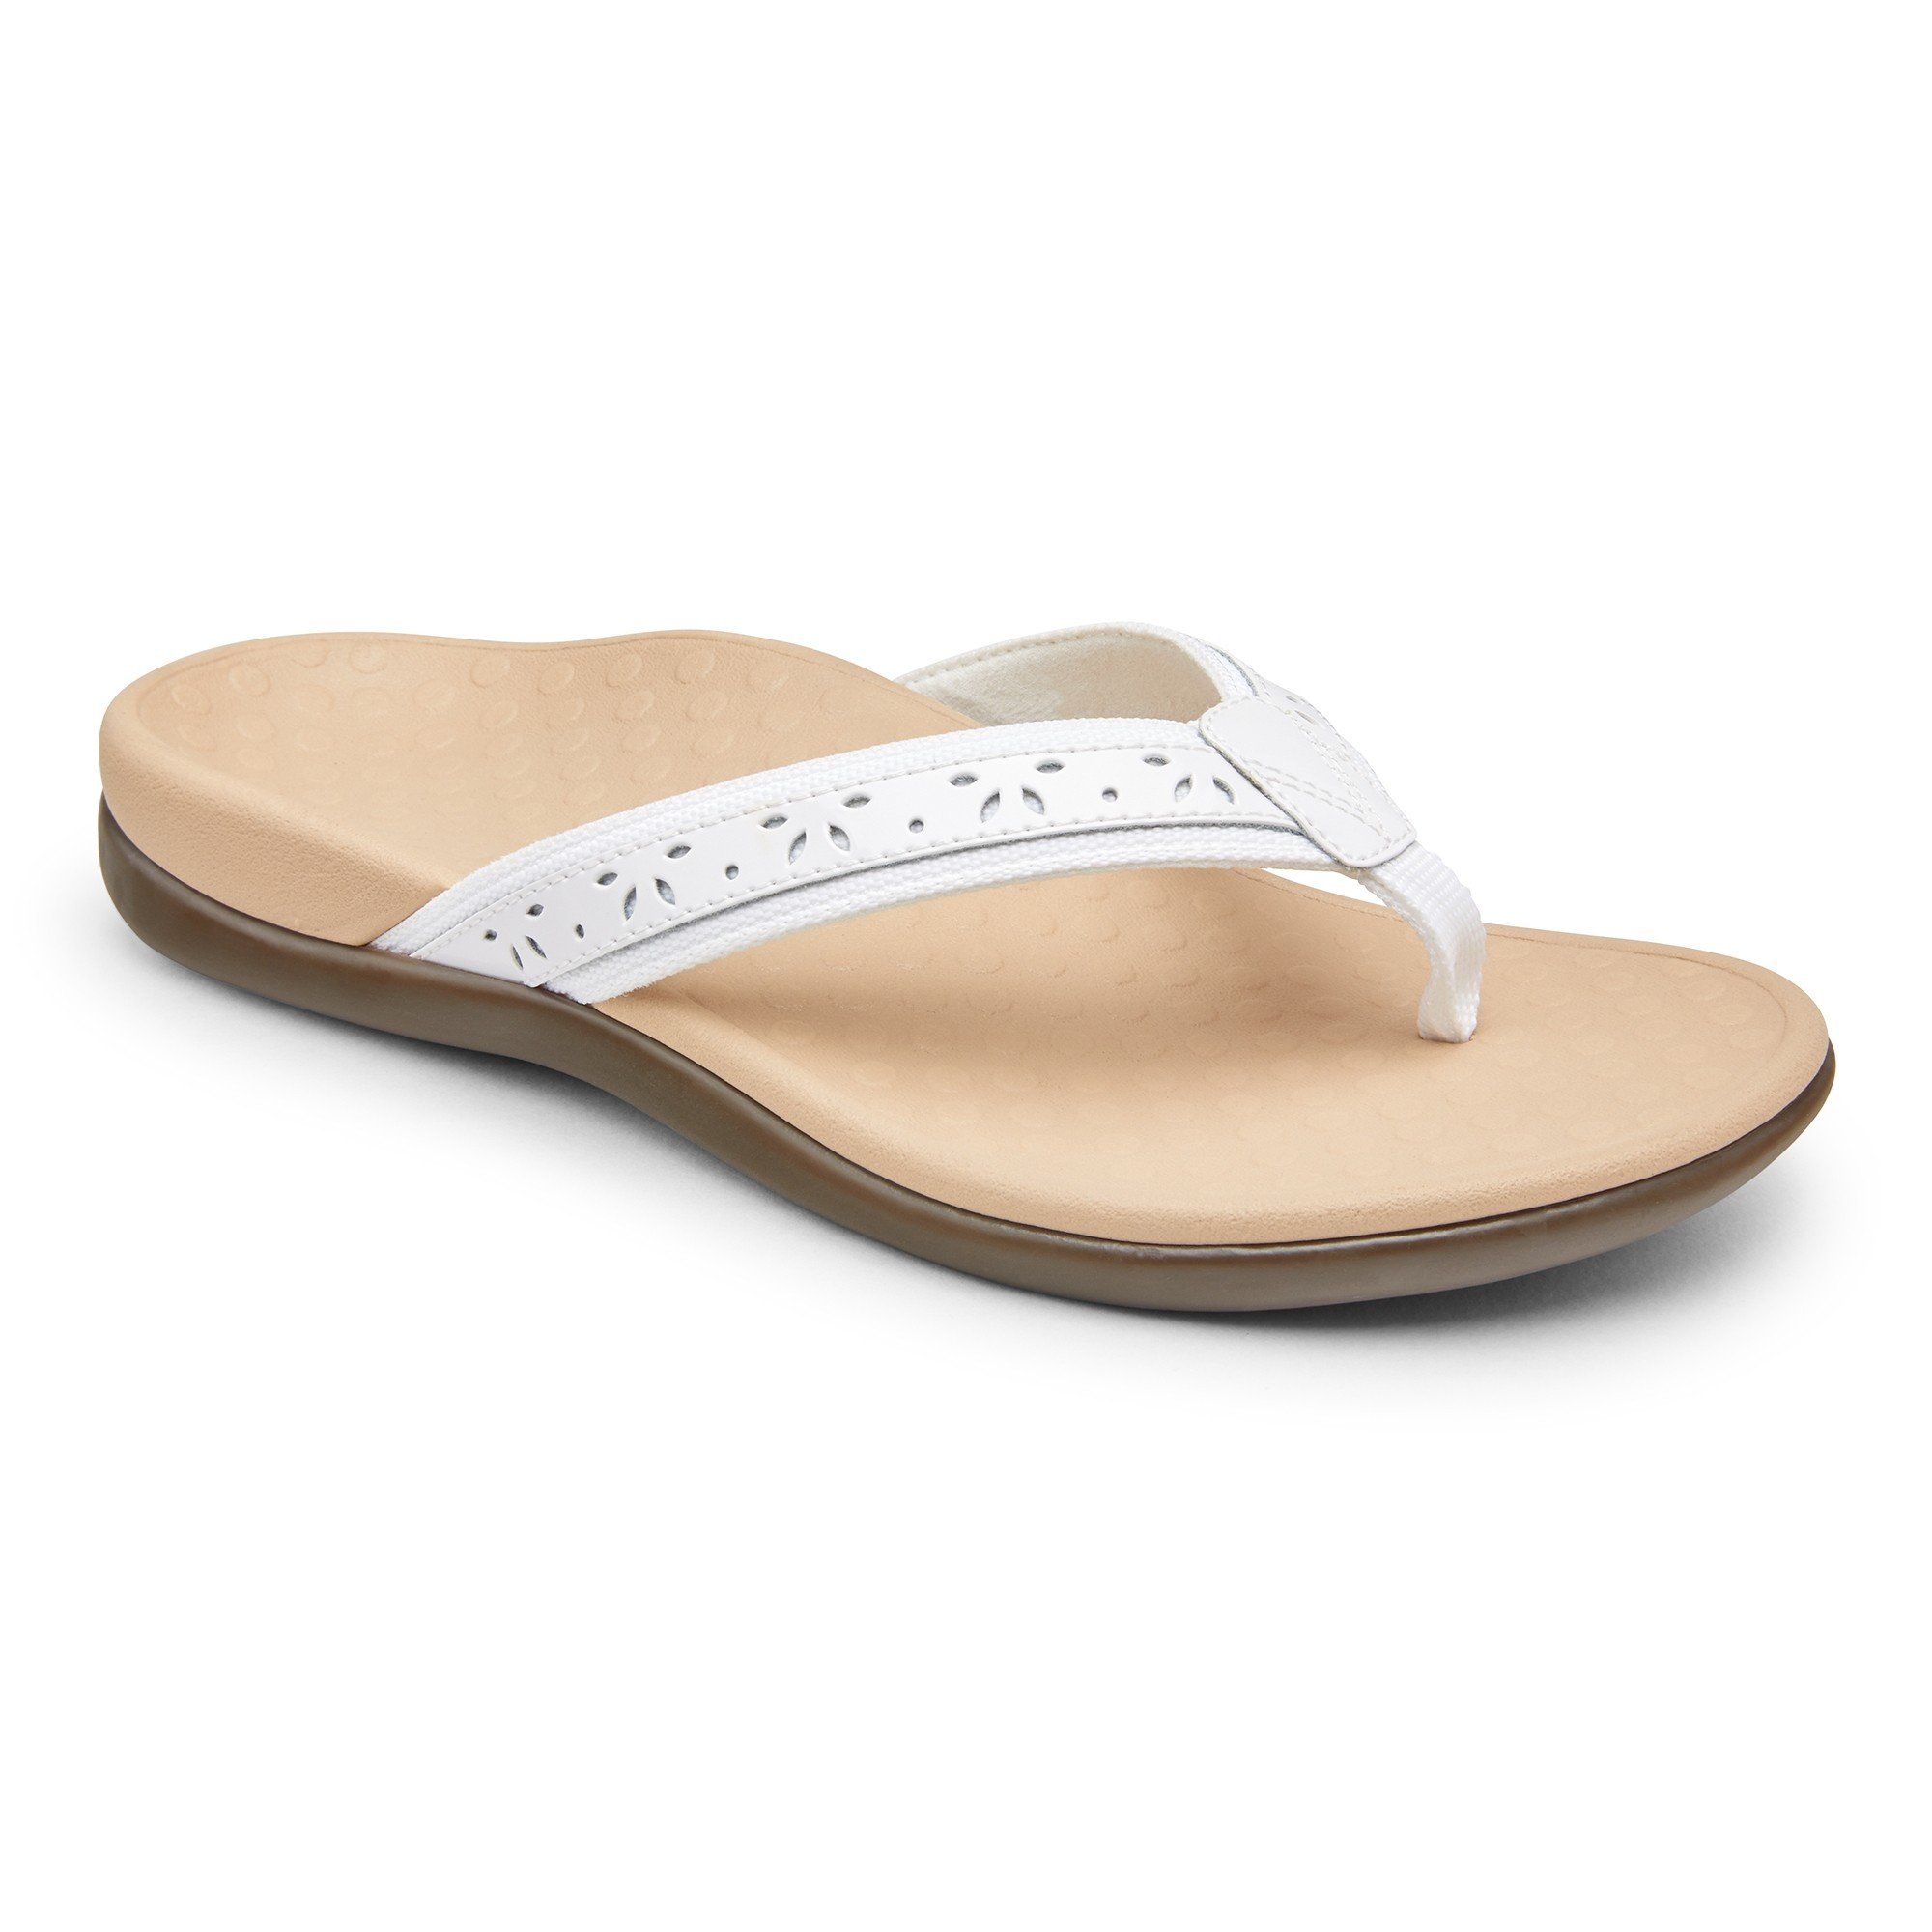 Vionic Tide Casandra Sandals - Women's